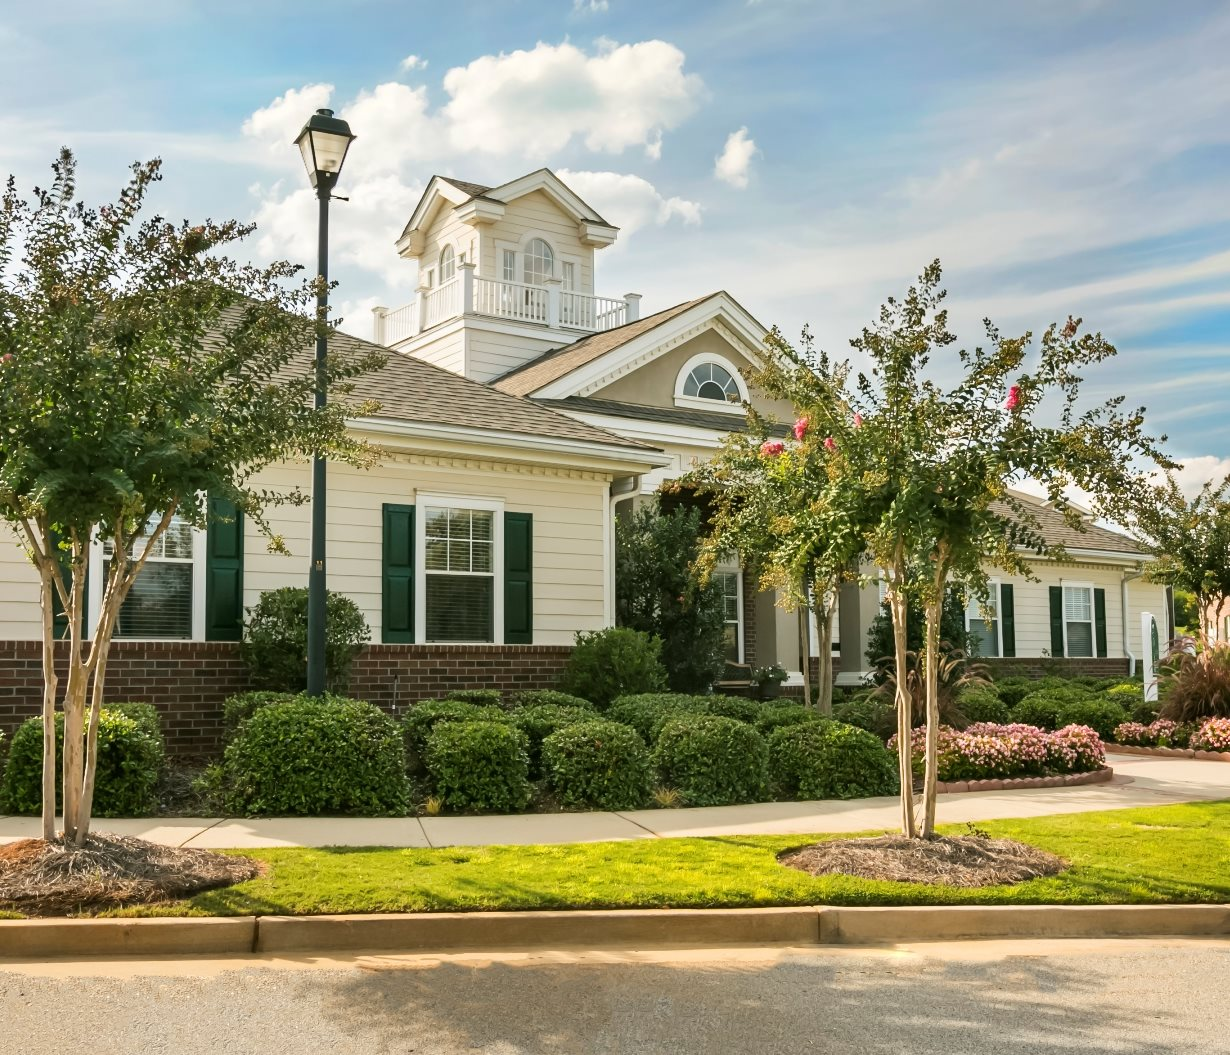 Westwood Club Apartments for rent in Evans, GA. Make this community your new home or visit other Concord Rents communities at ConcordRENTS.com. Clubhouse